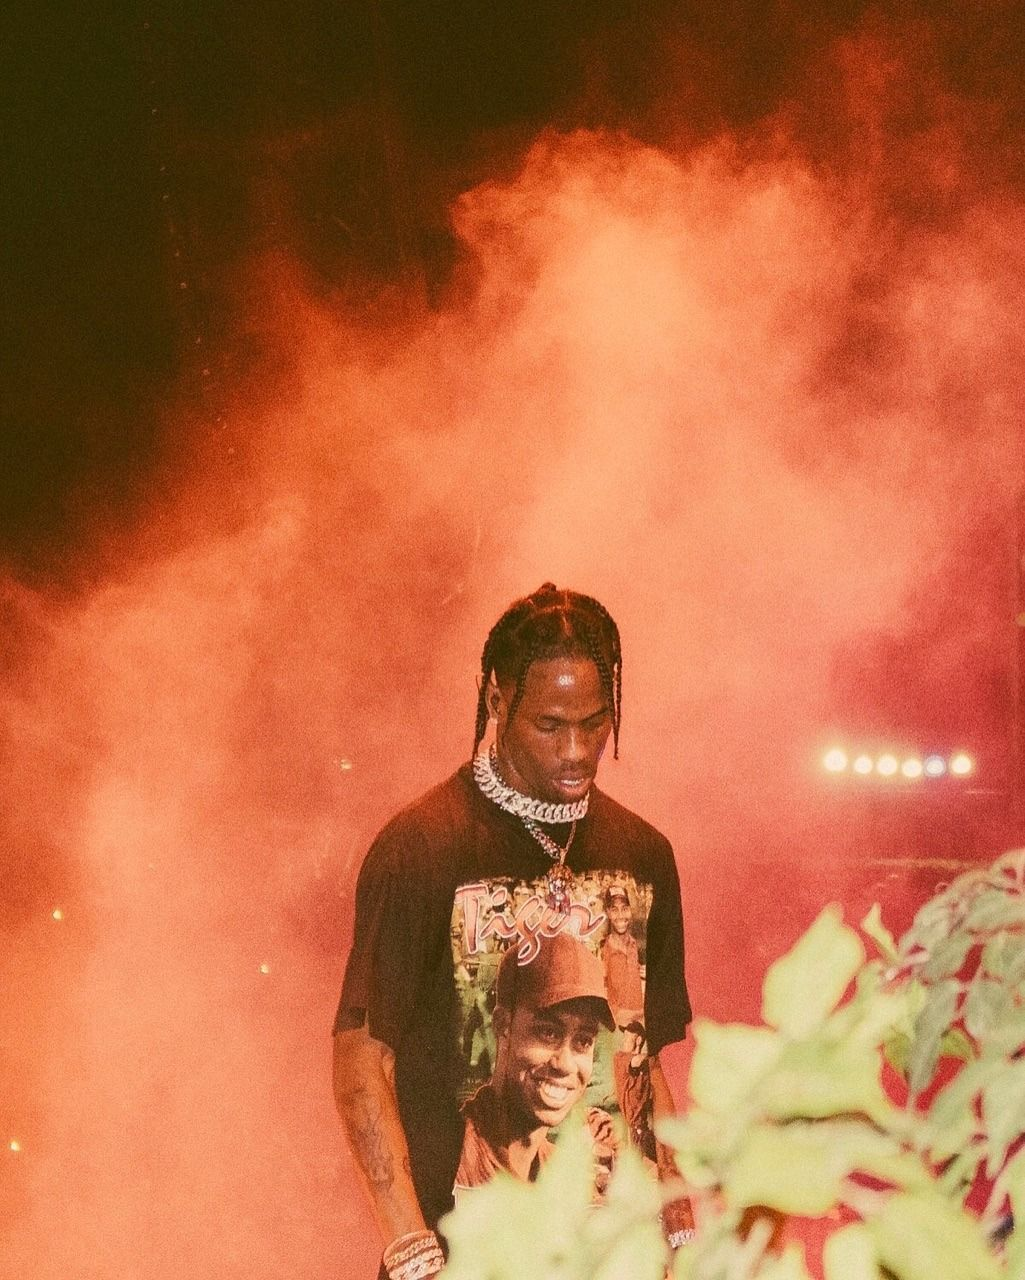 Travis Scott Travisscottwallpapers In 2020 Travis Scott Wallpapers Travis Scott Art Travis Scott Tumblr